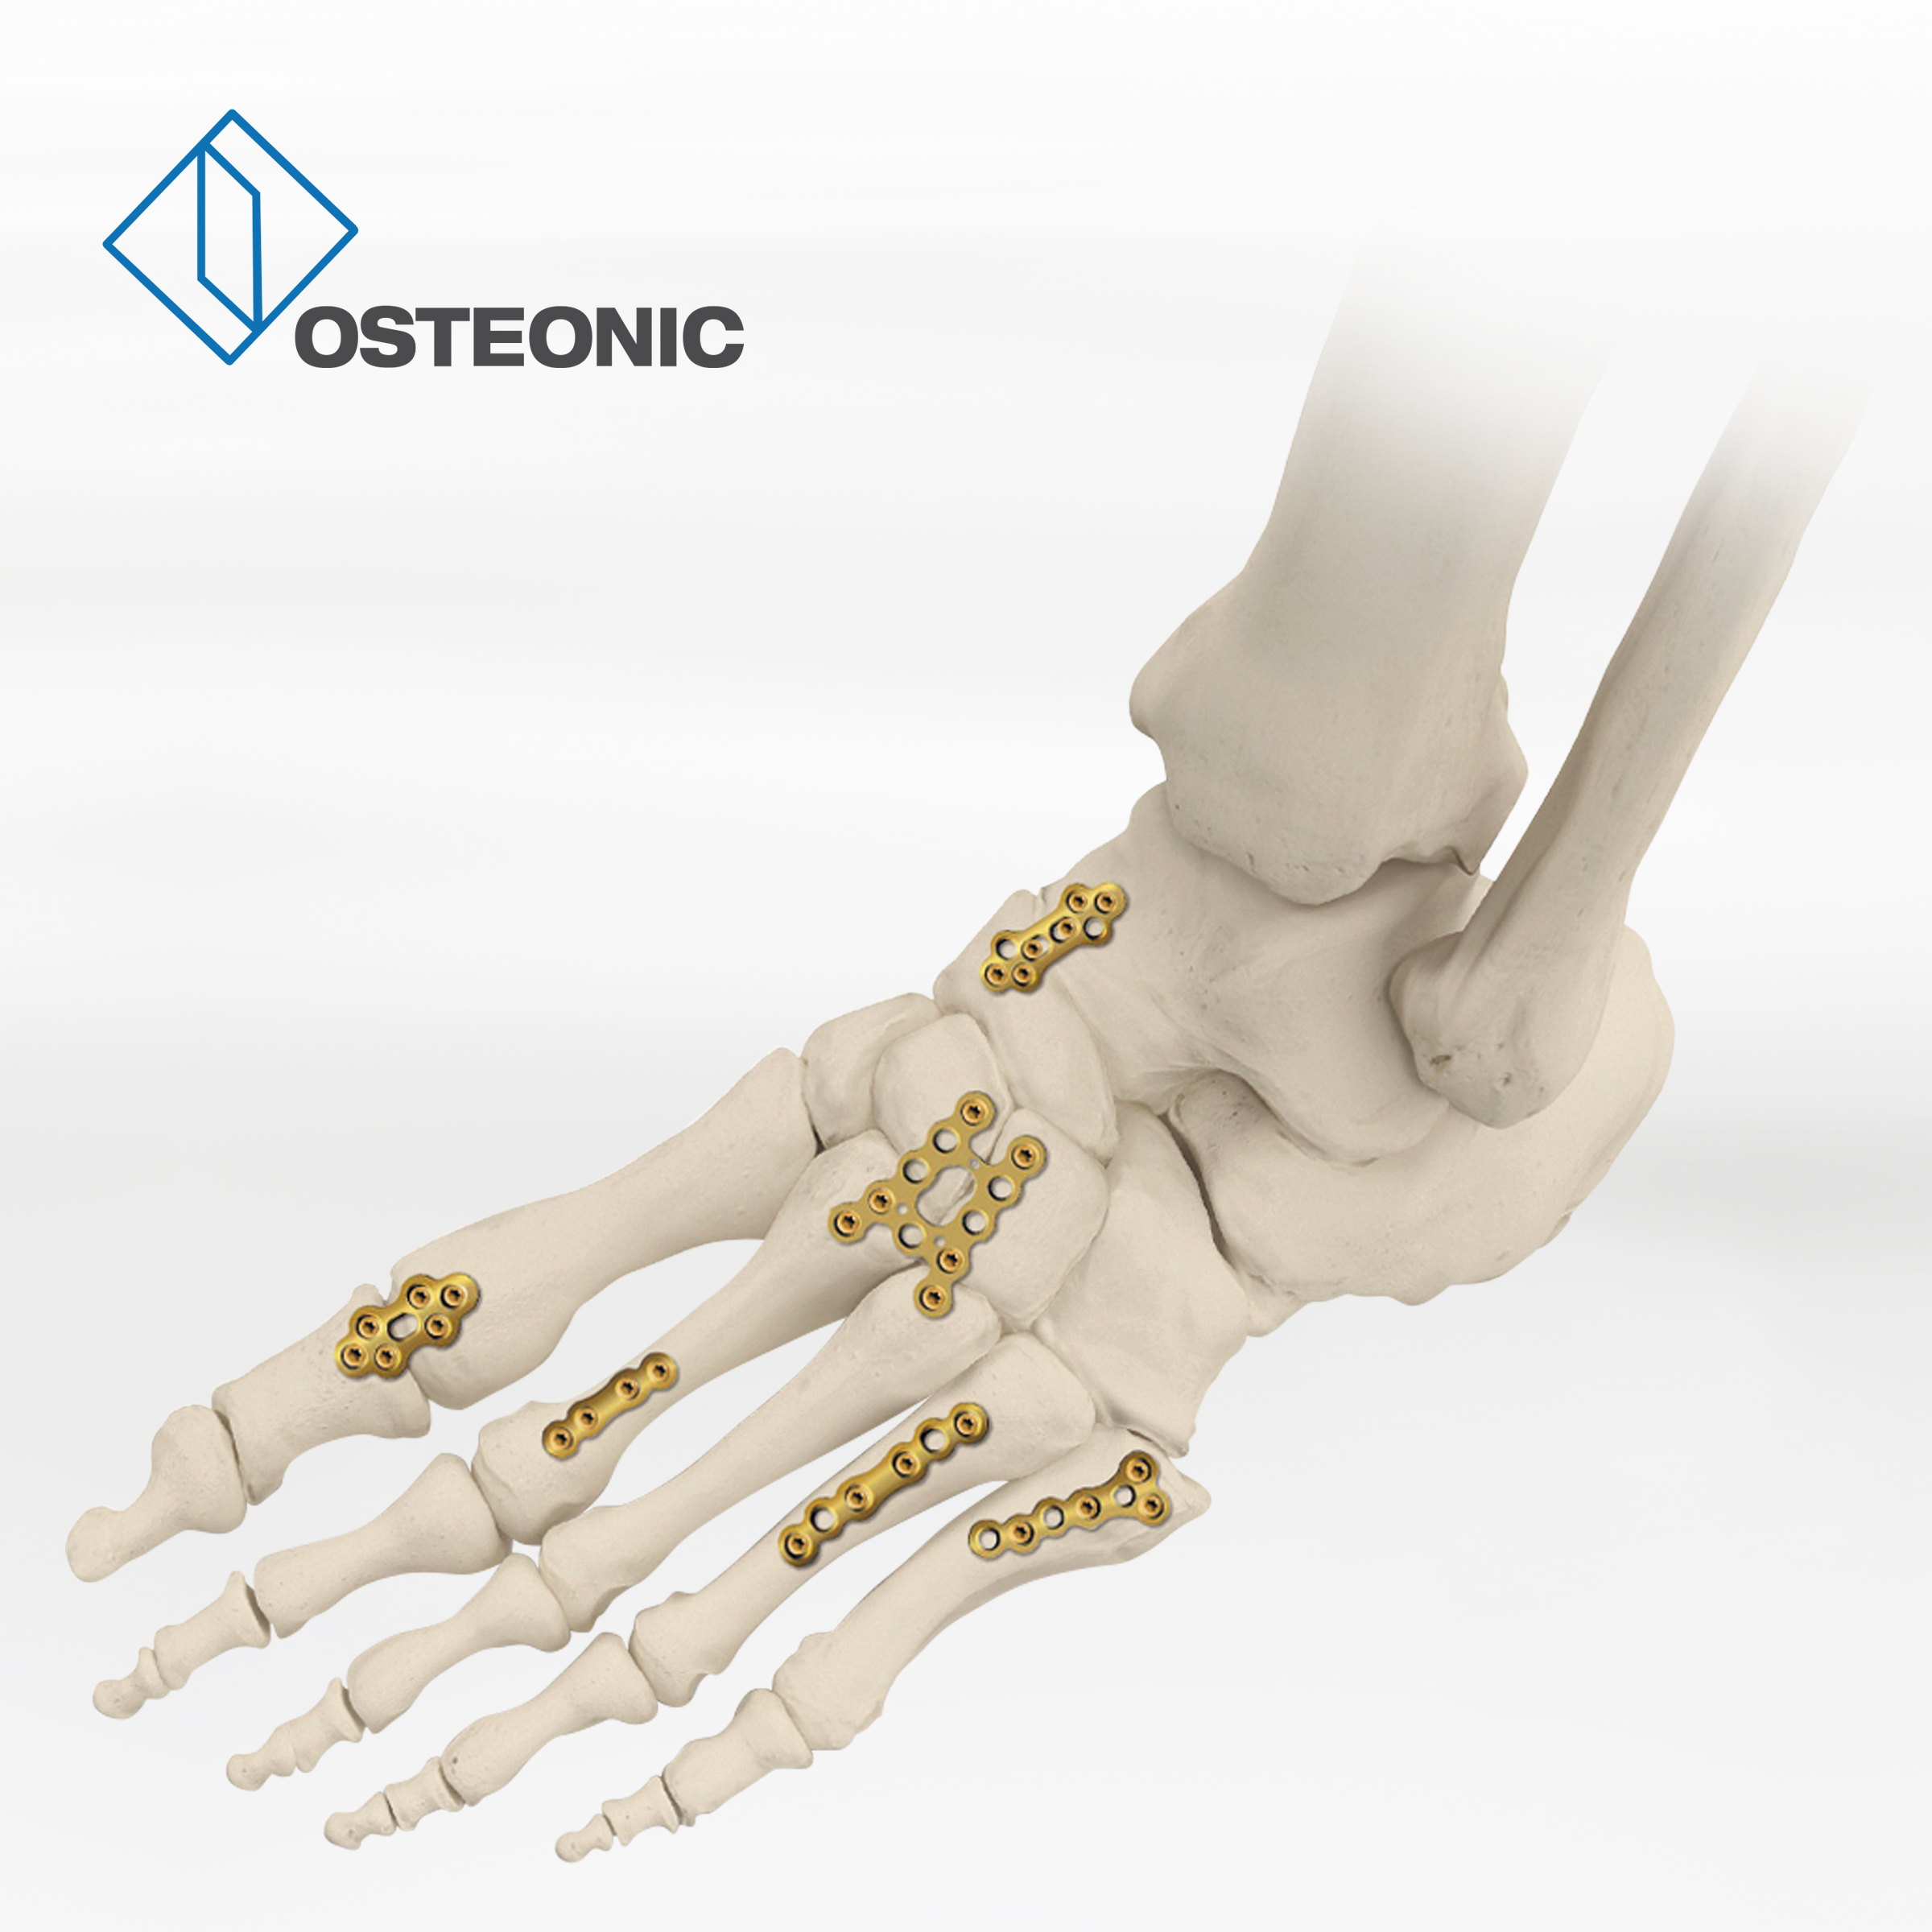 Osteonic piede